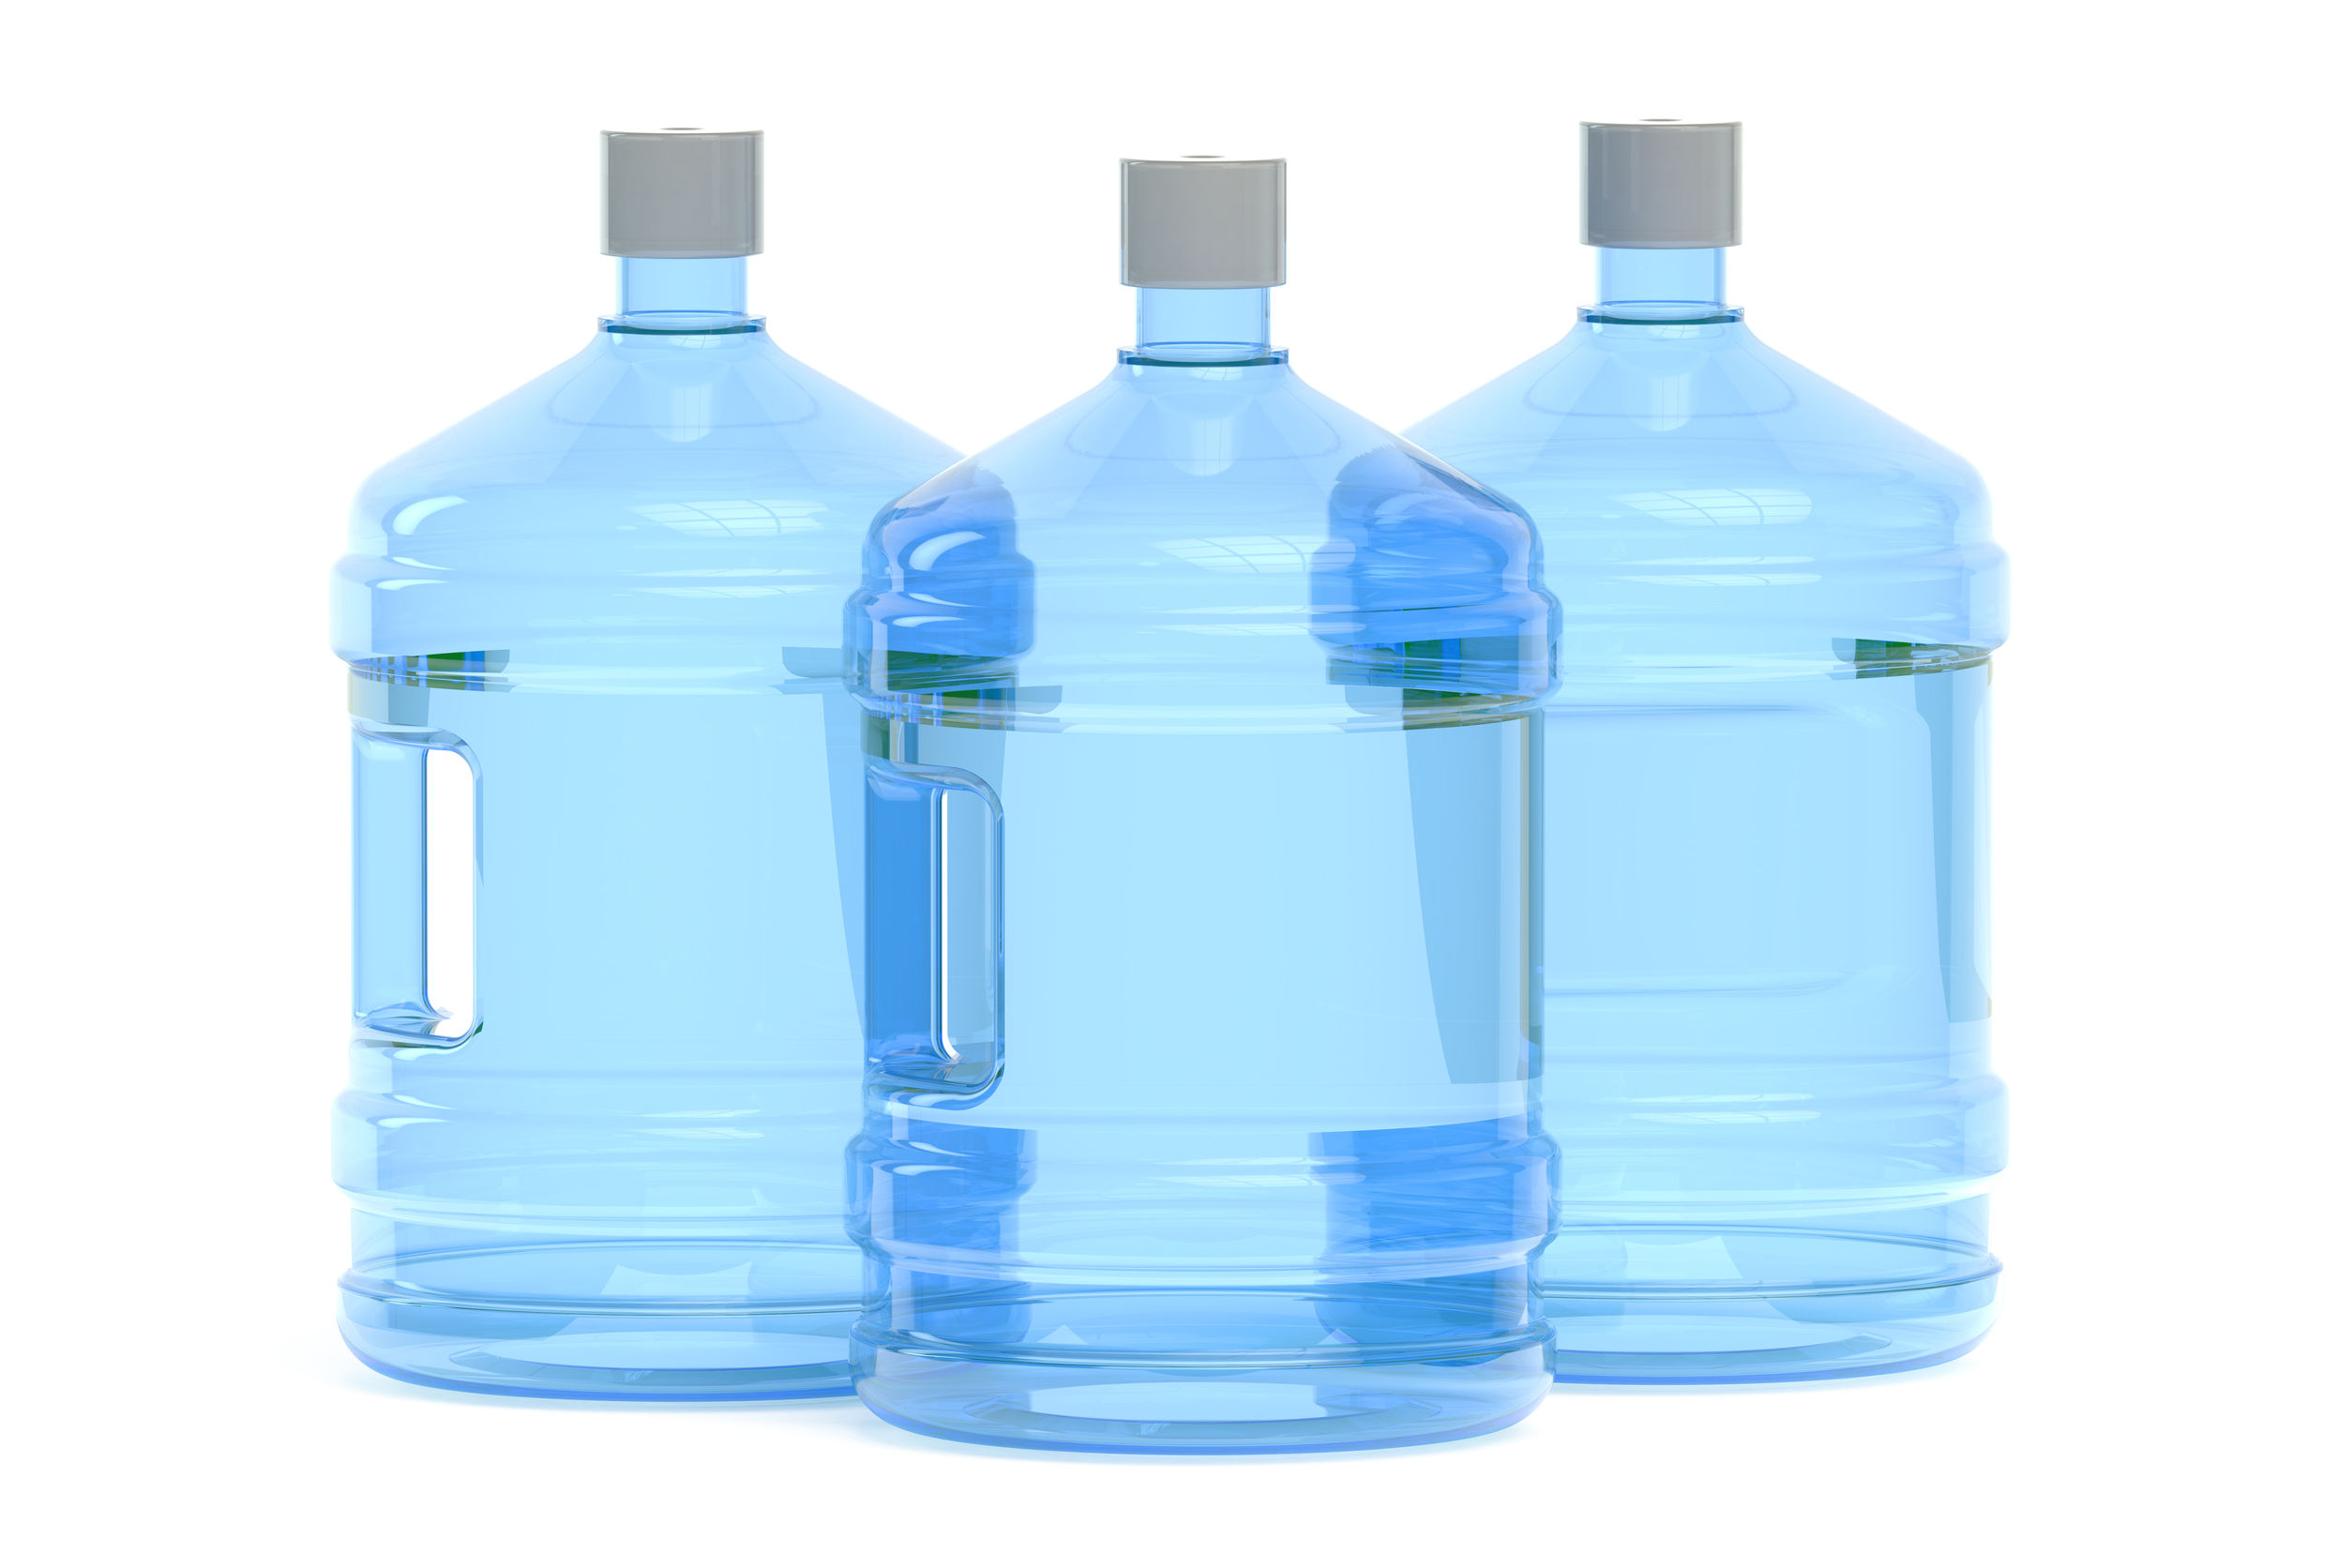 48107535 - big bottles of water isolated on white background